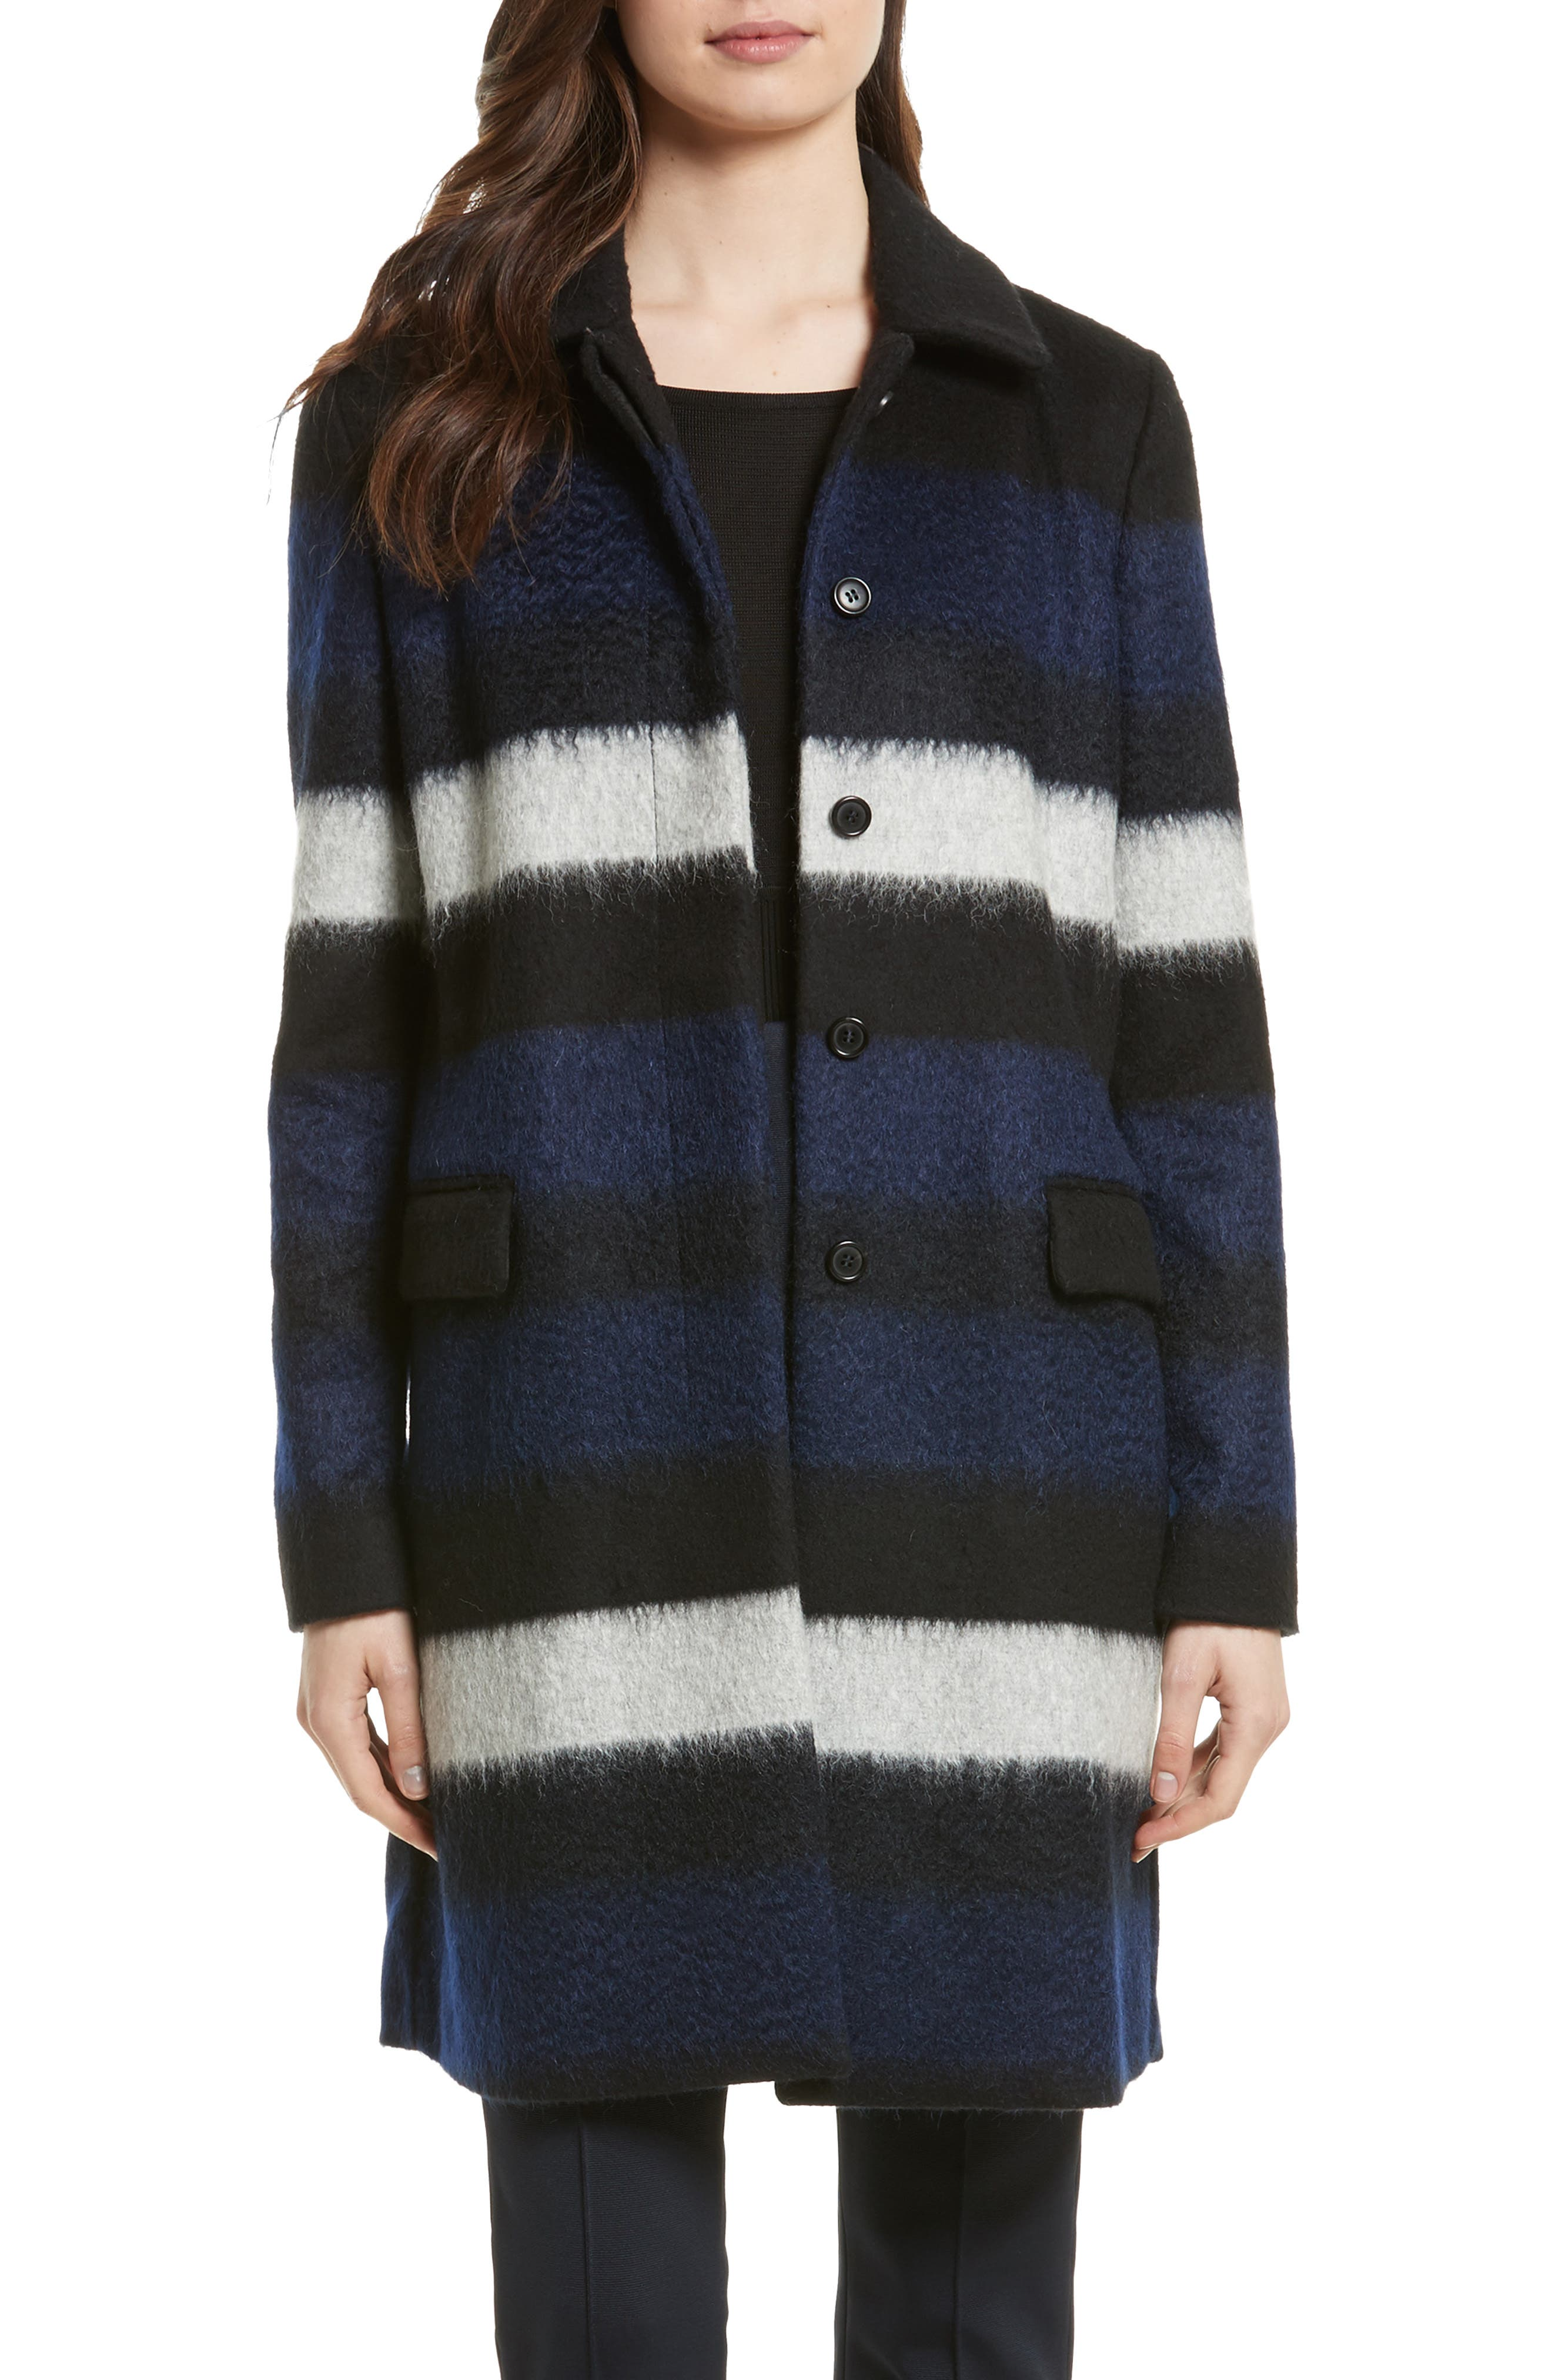 Stripe Wool Blend Coat,                         Main,                         color, Black Multi Stripe